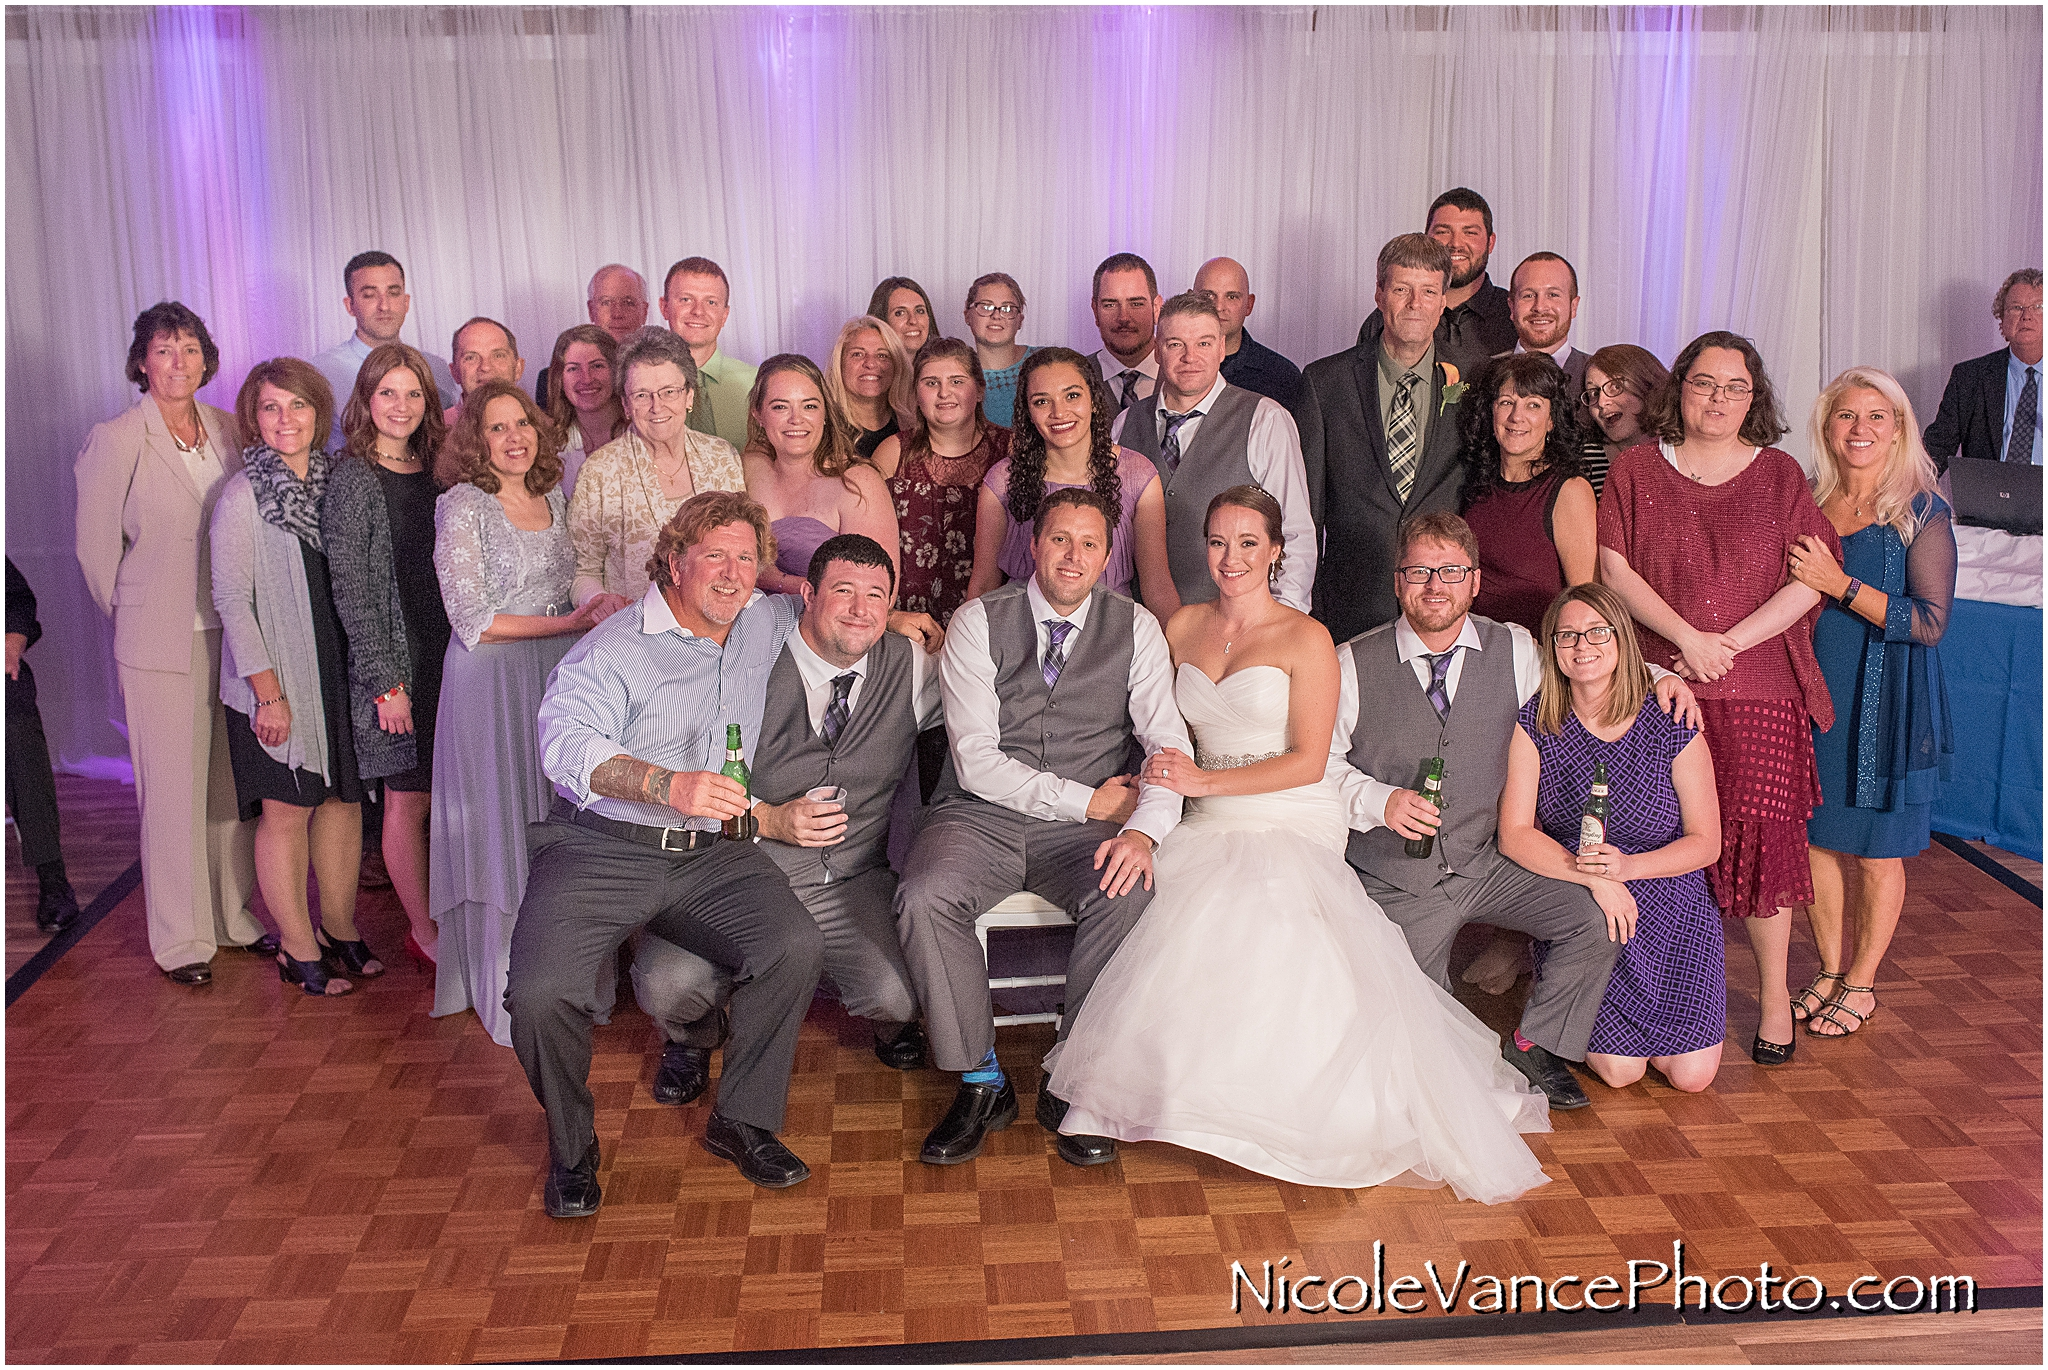 Extended family photo during the wedding reception at the Brownstone.